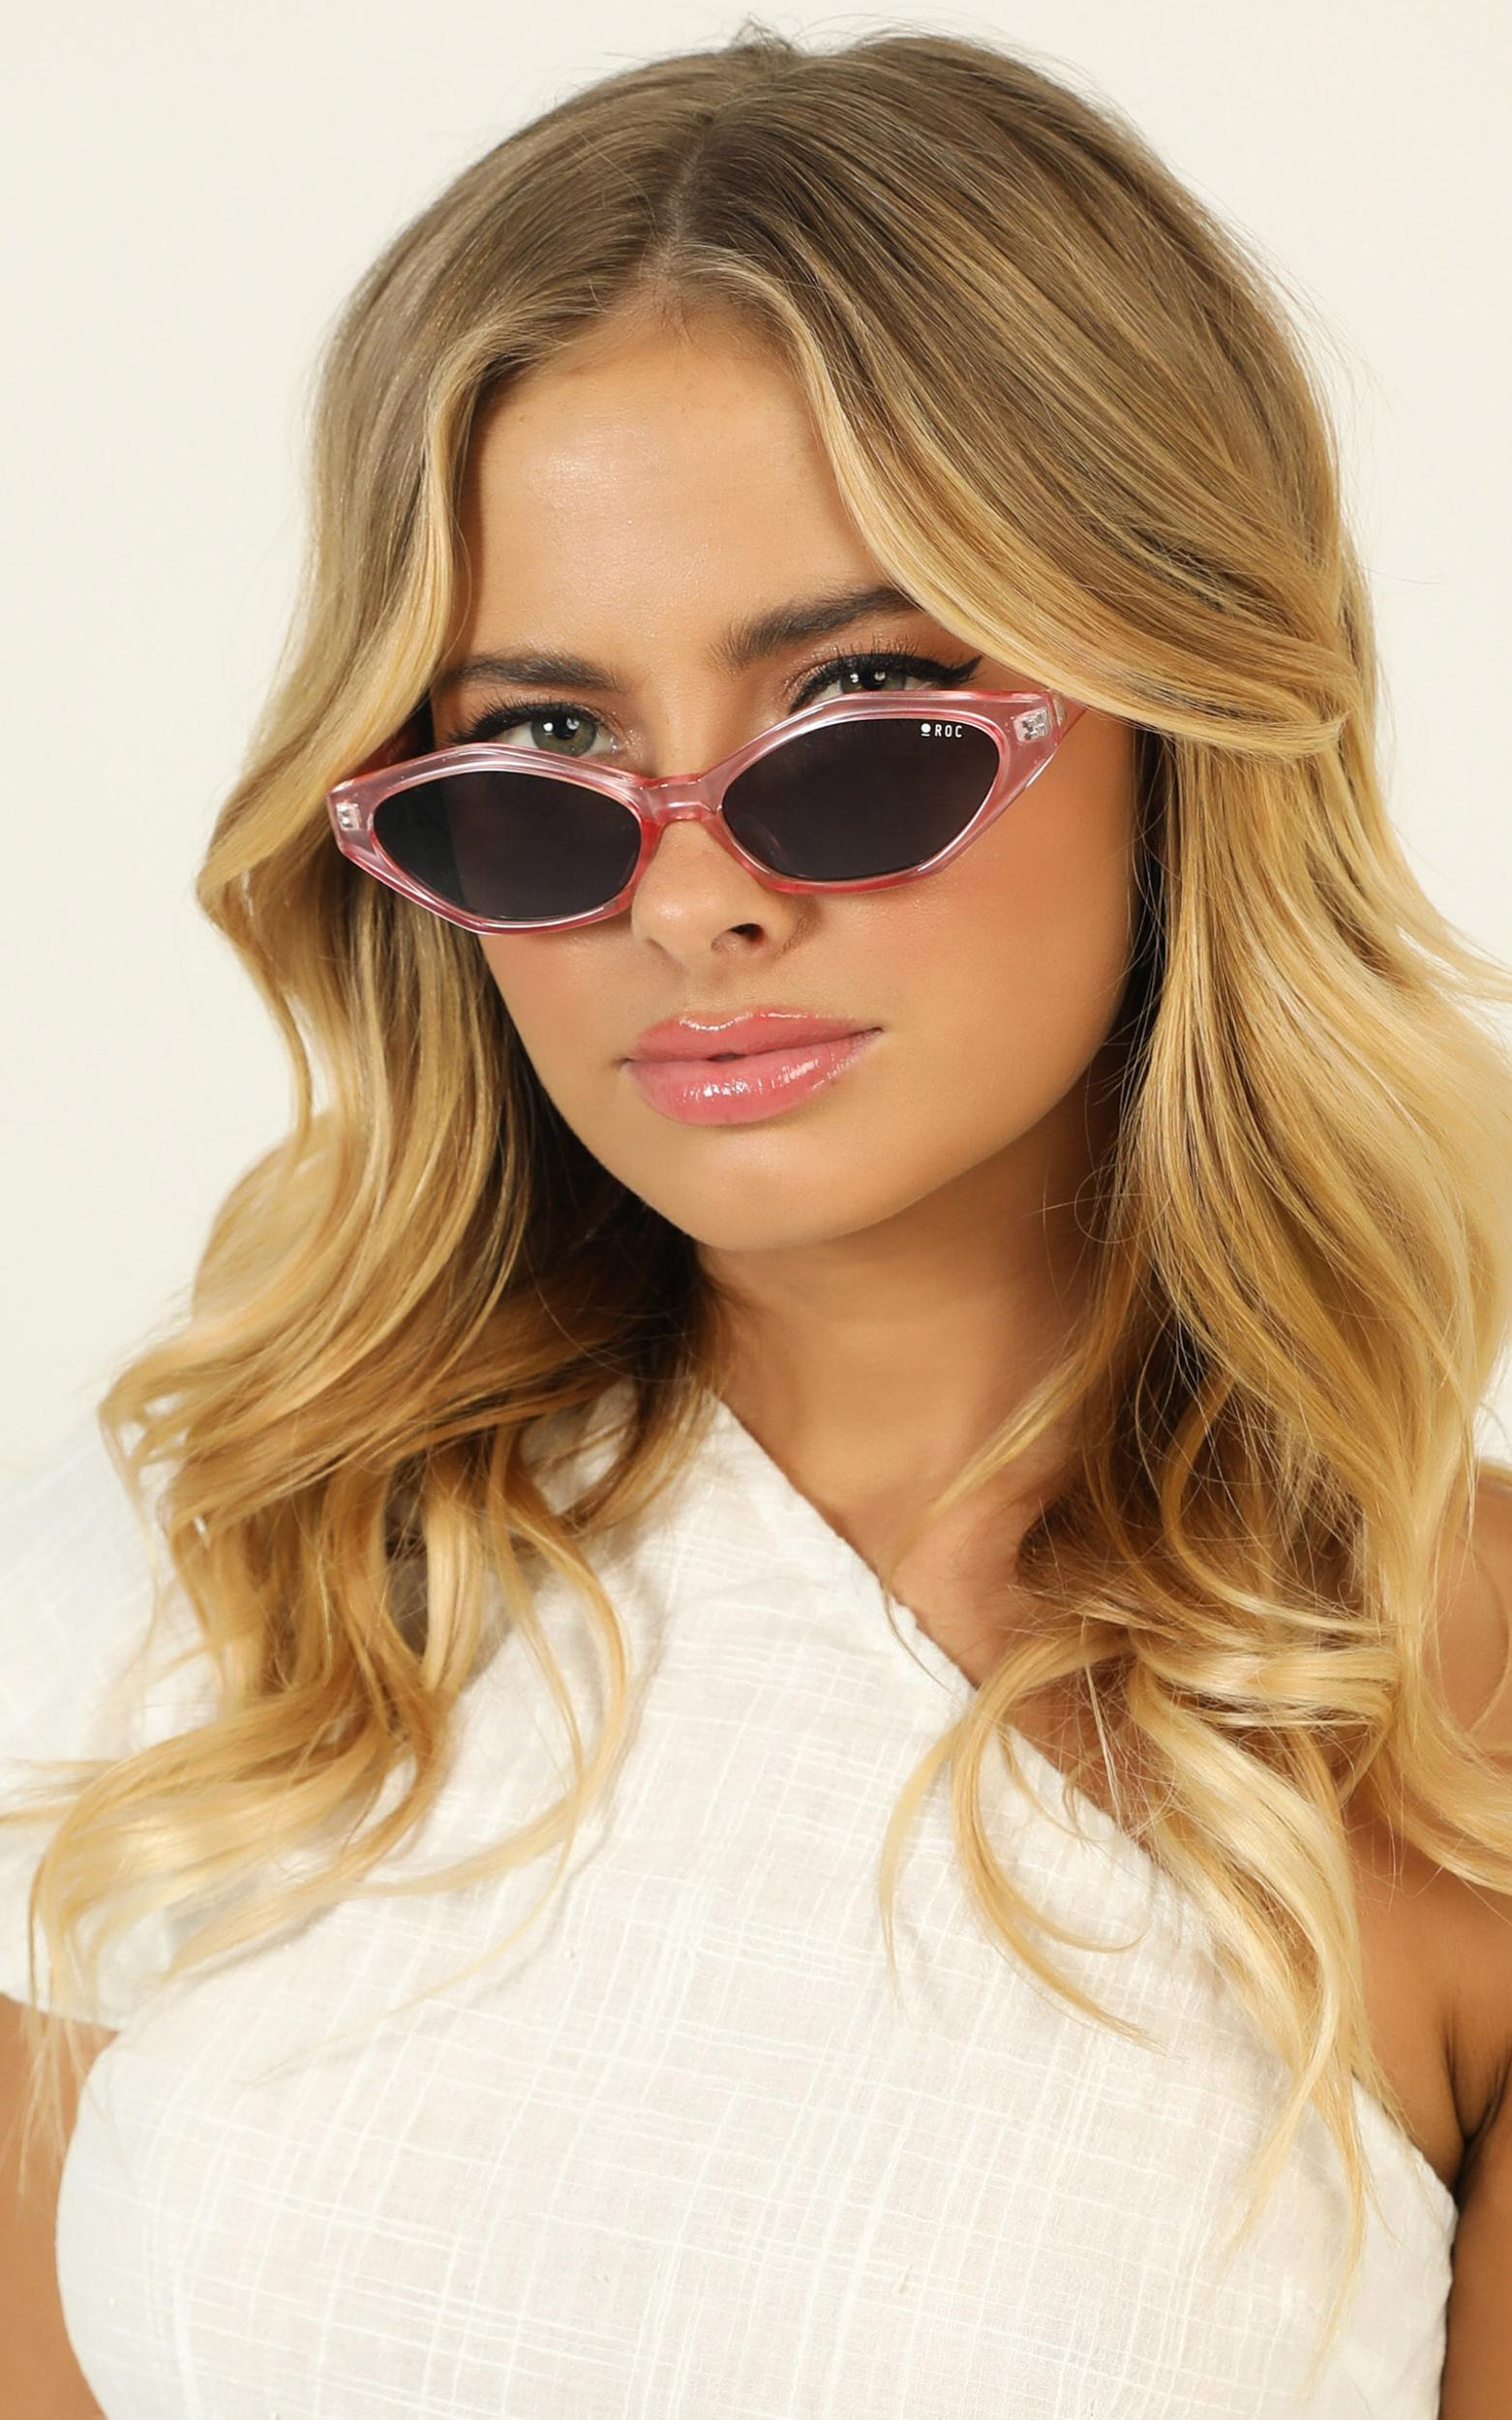 Roc - Let's Bumble Sunglasses In Metallic Pink, , hi-res image number null